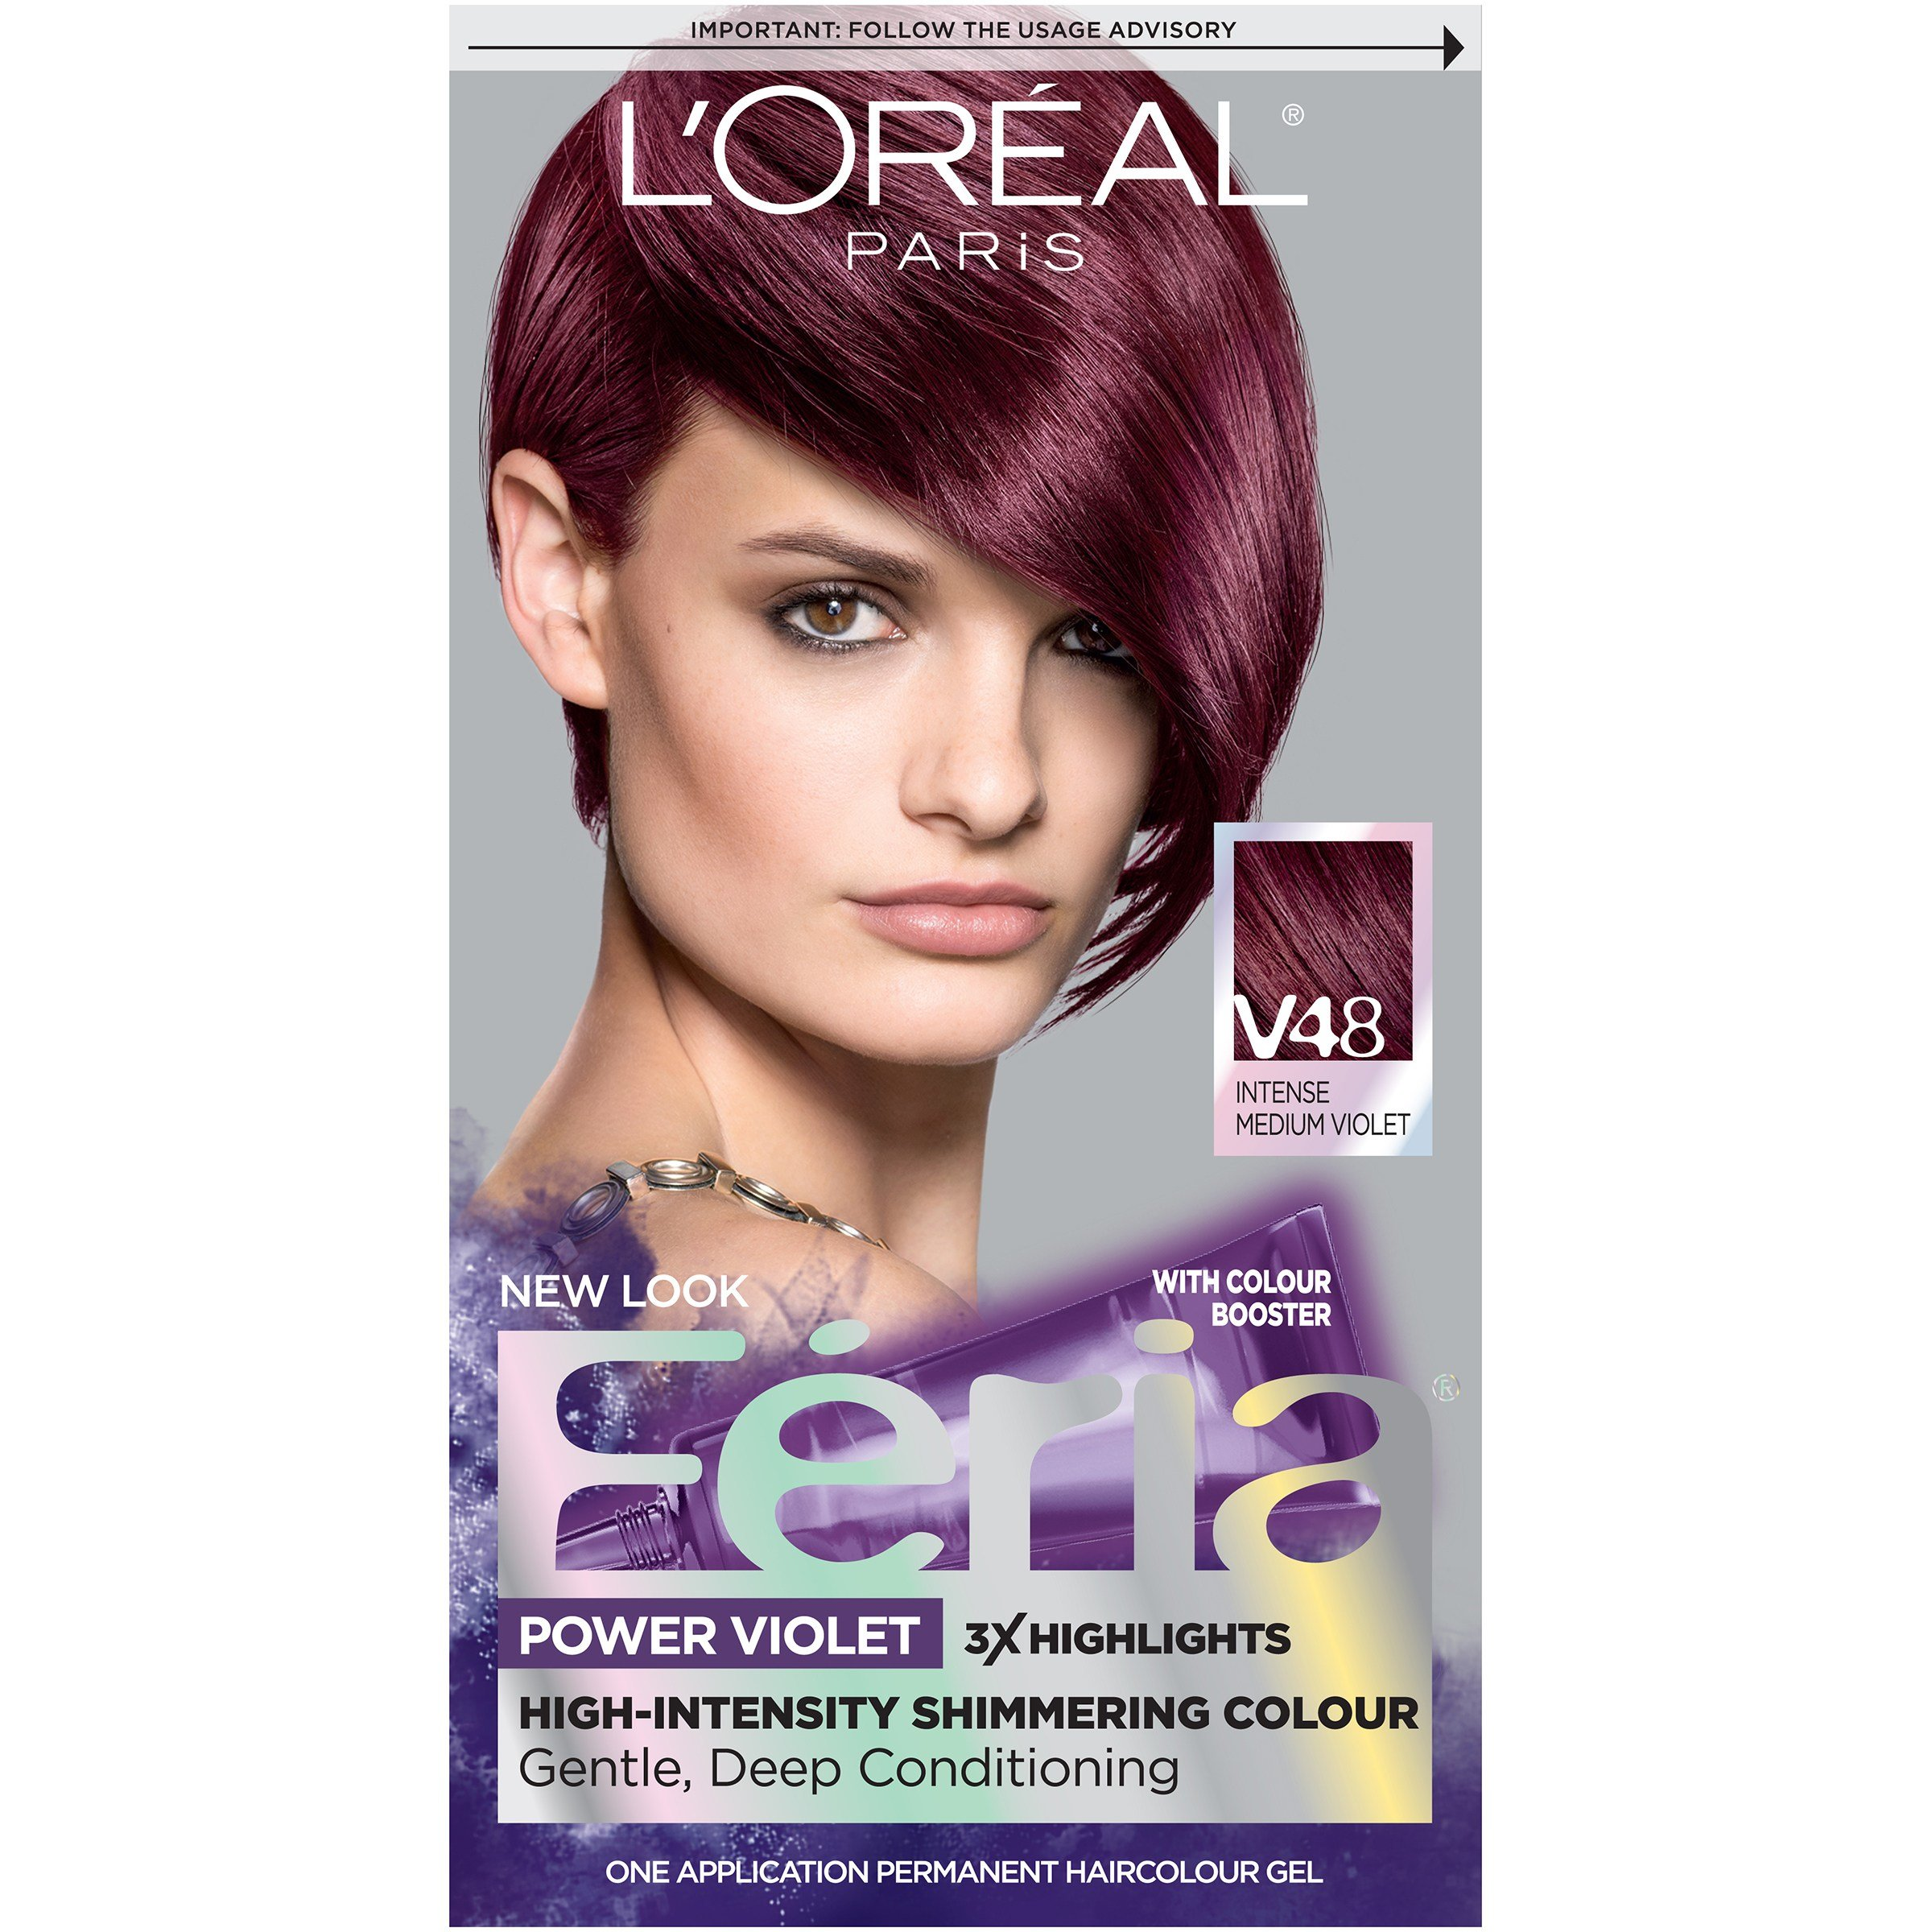 New L Oréal Paris Feria Hair Color V48 Intense Medium Violet Ideas With Pictures